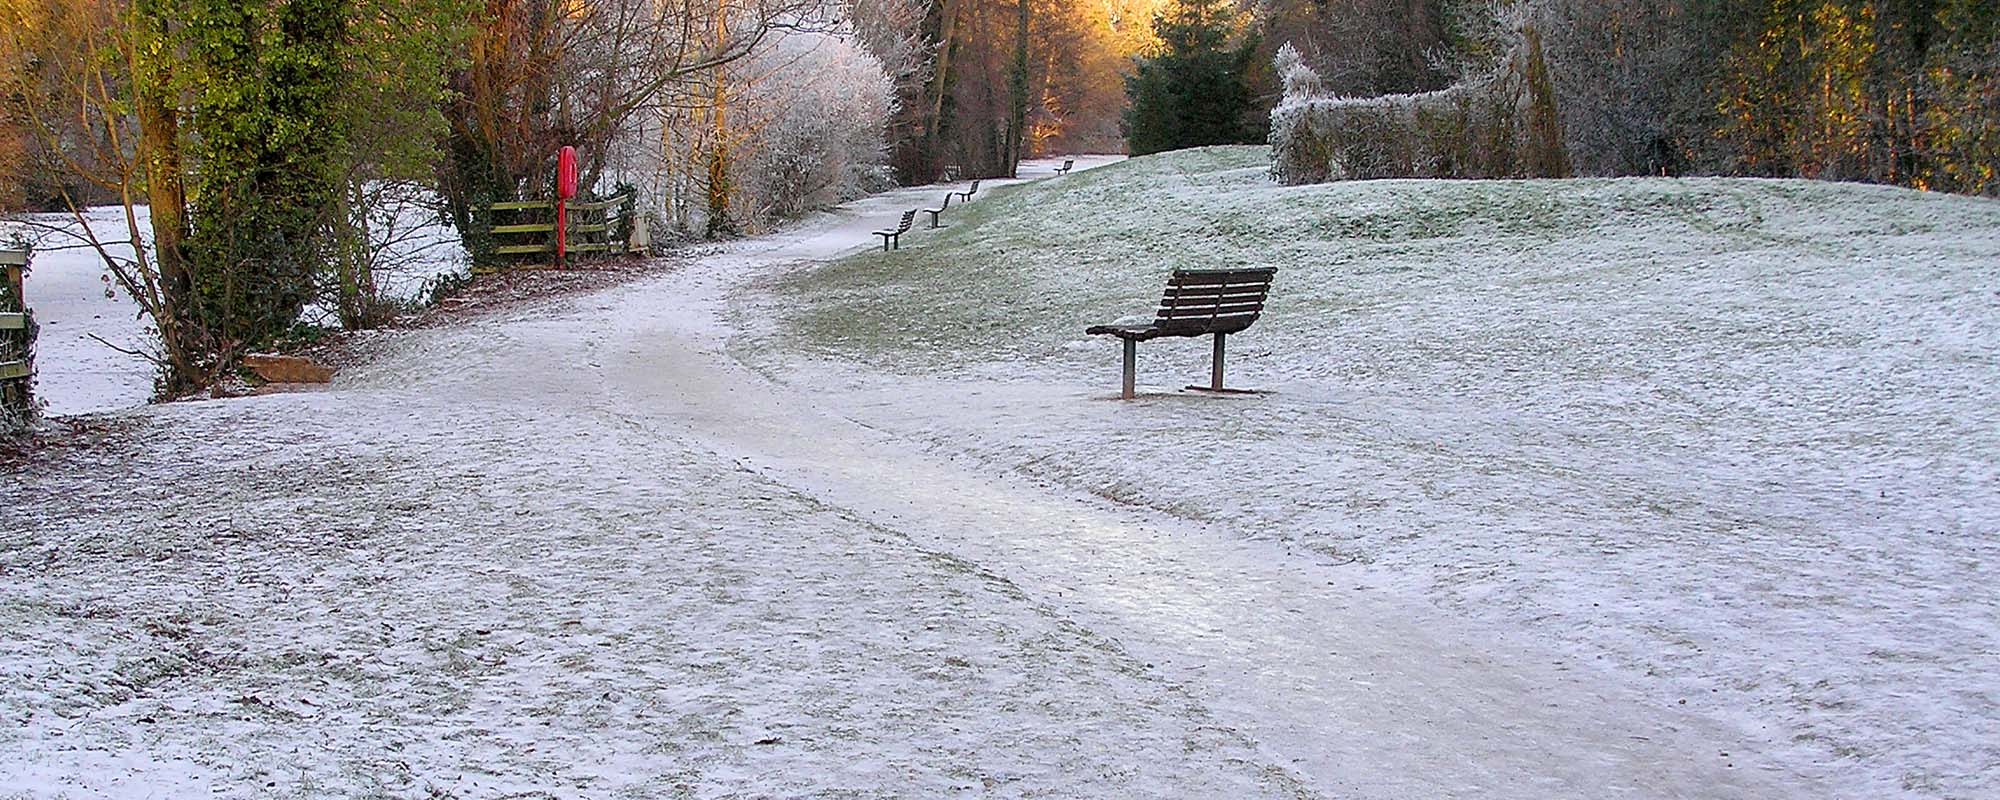 Newent Lake in winter